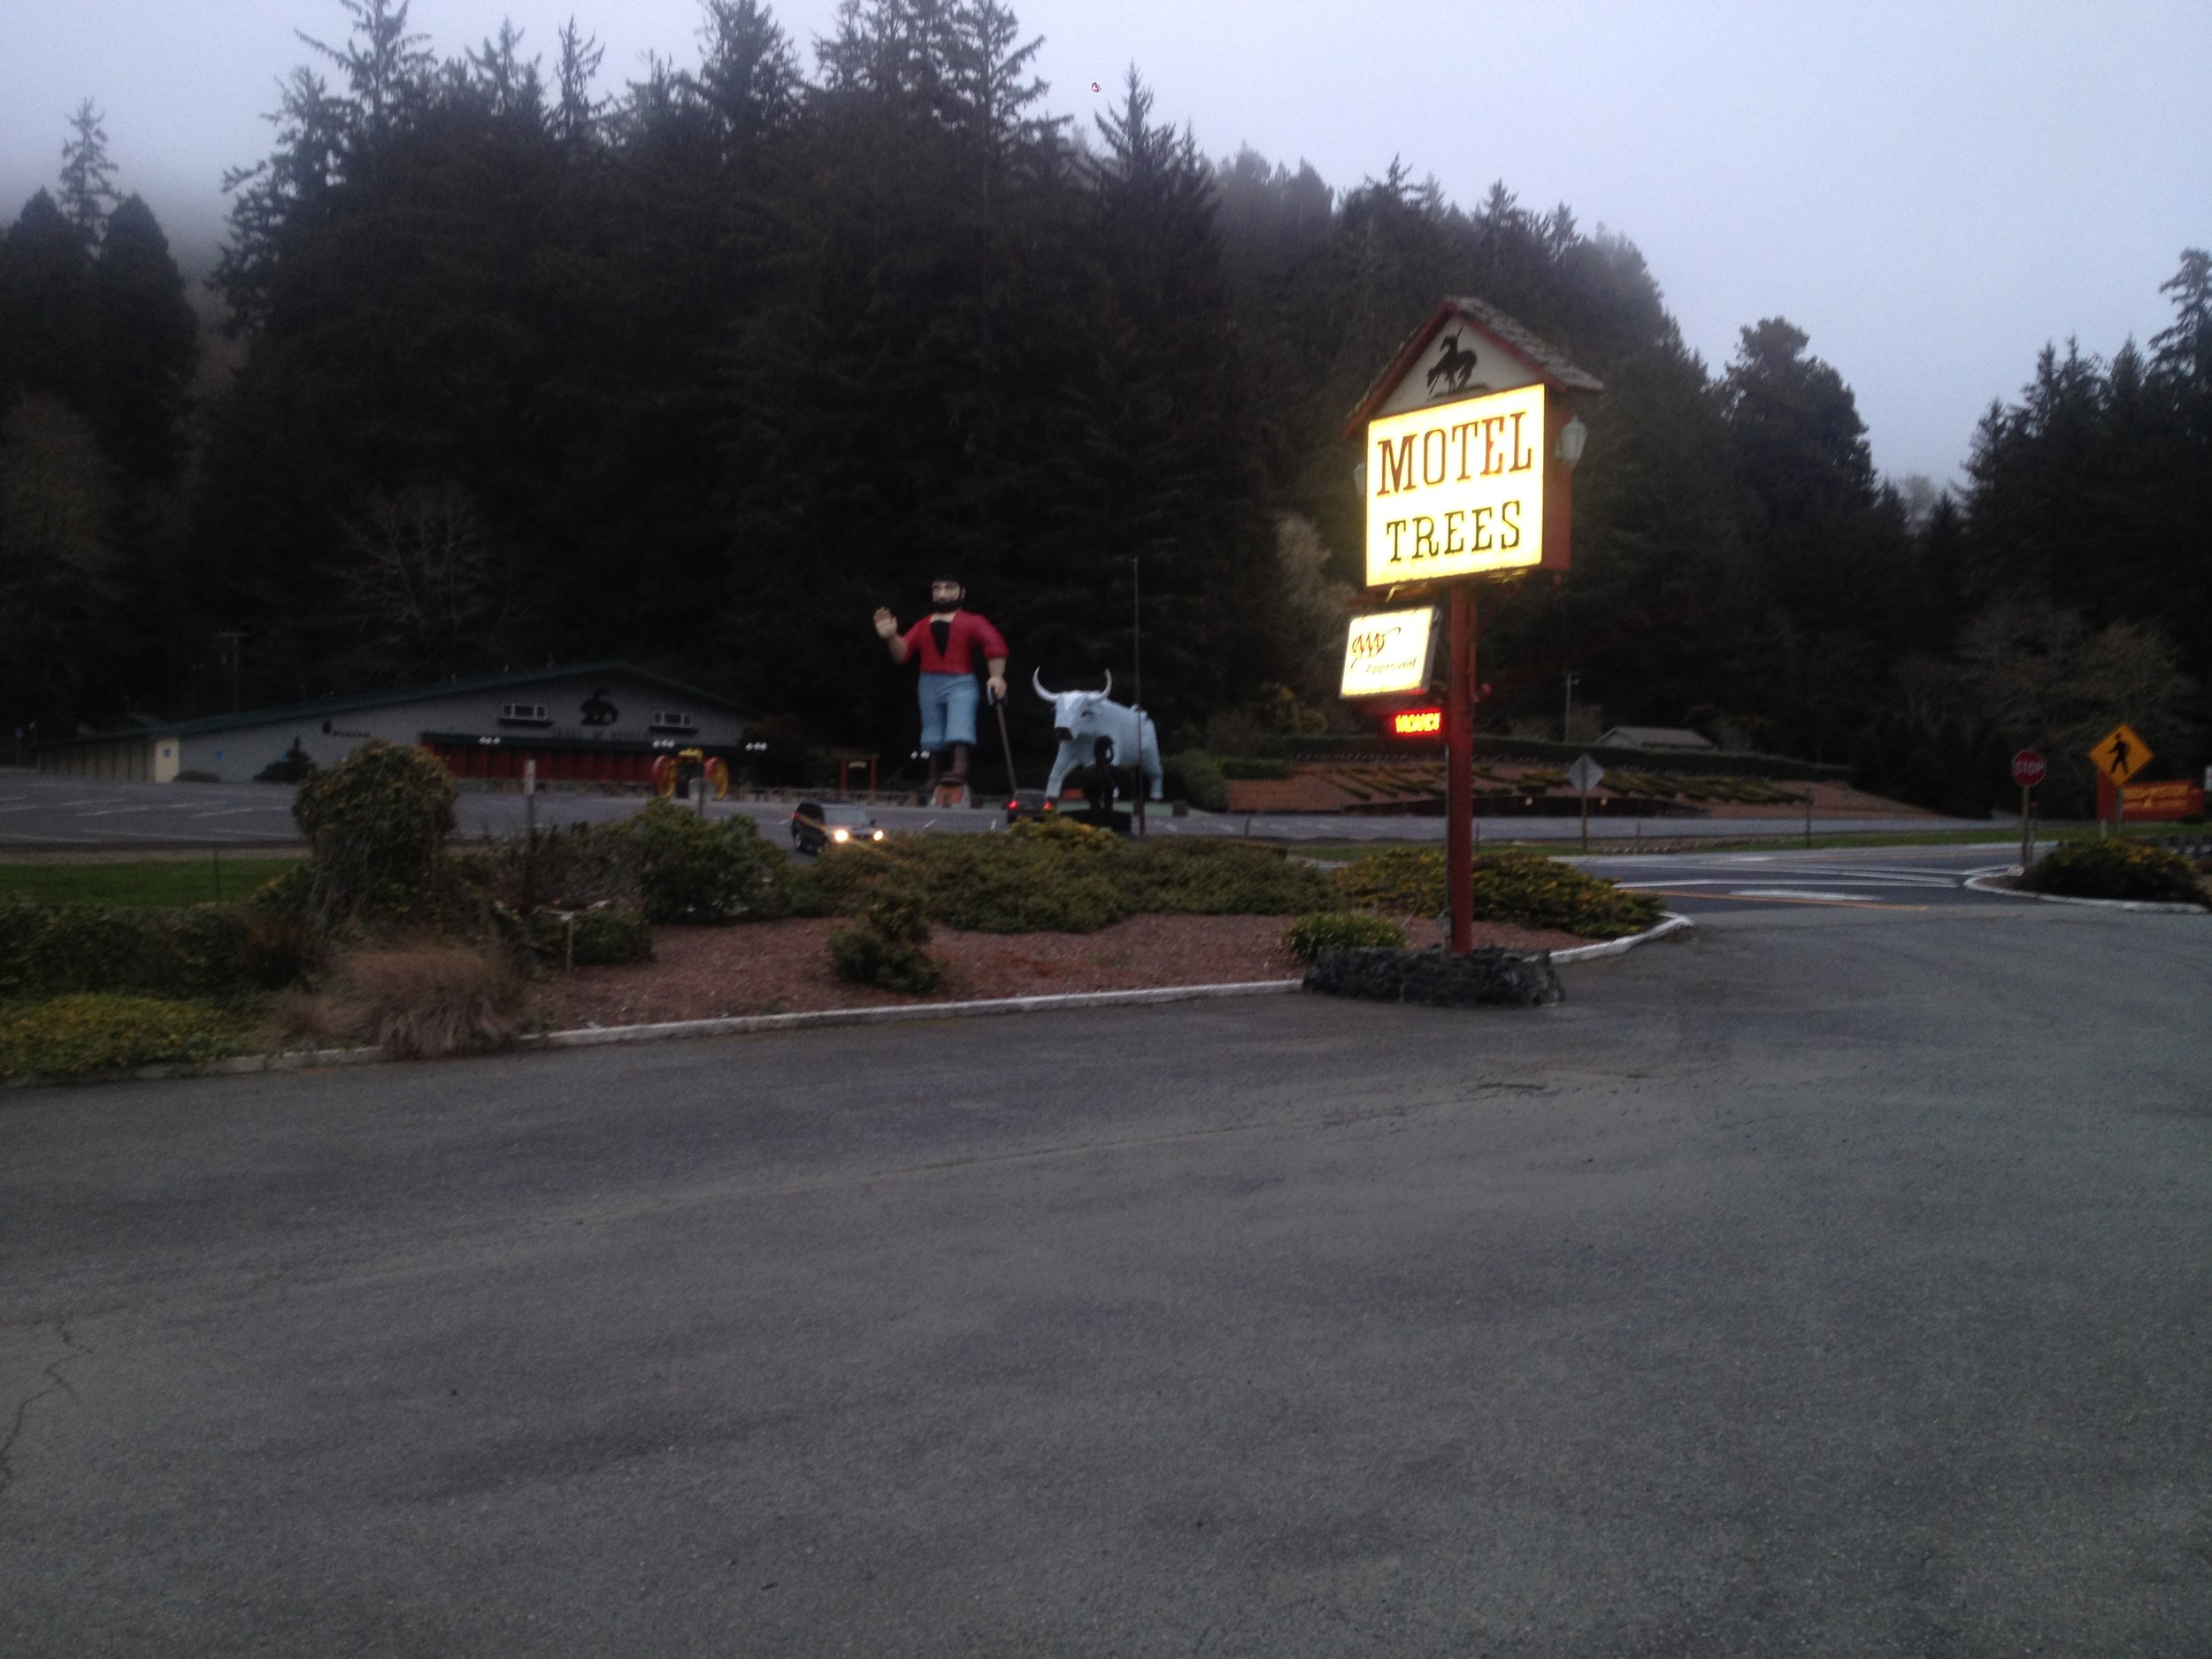 Staying at the Hotel Trees. Located at the foot of the famed Trees of Mystery and it's giant Paul Bunyan statue.